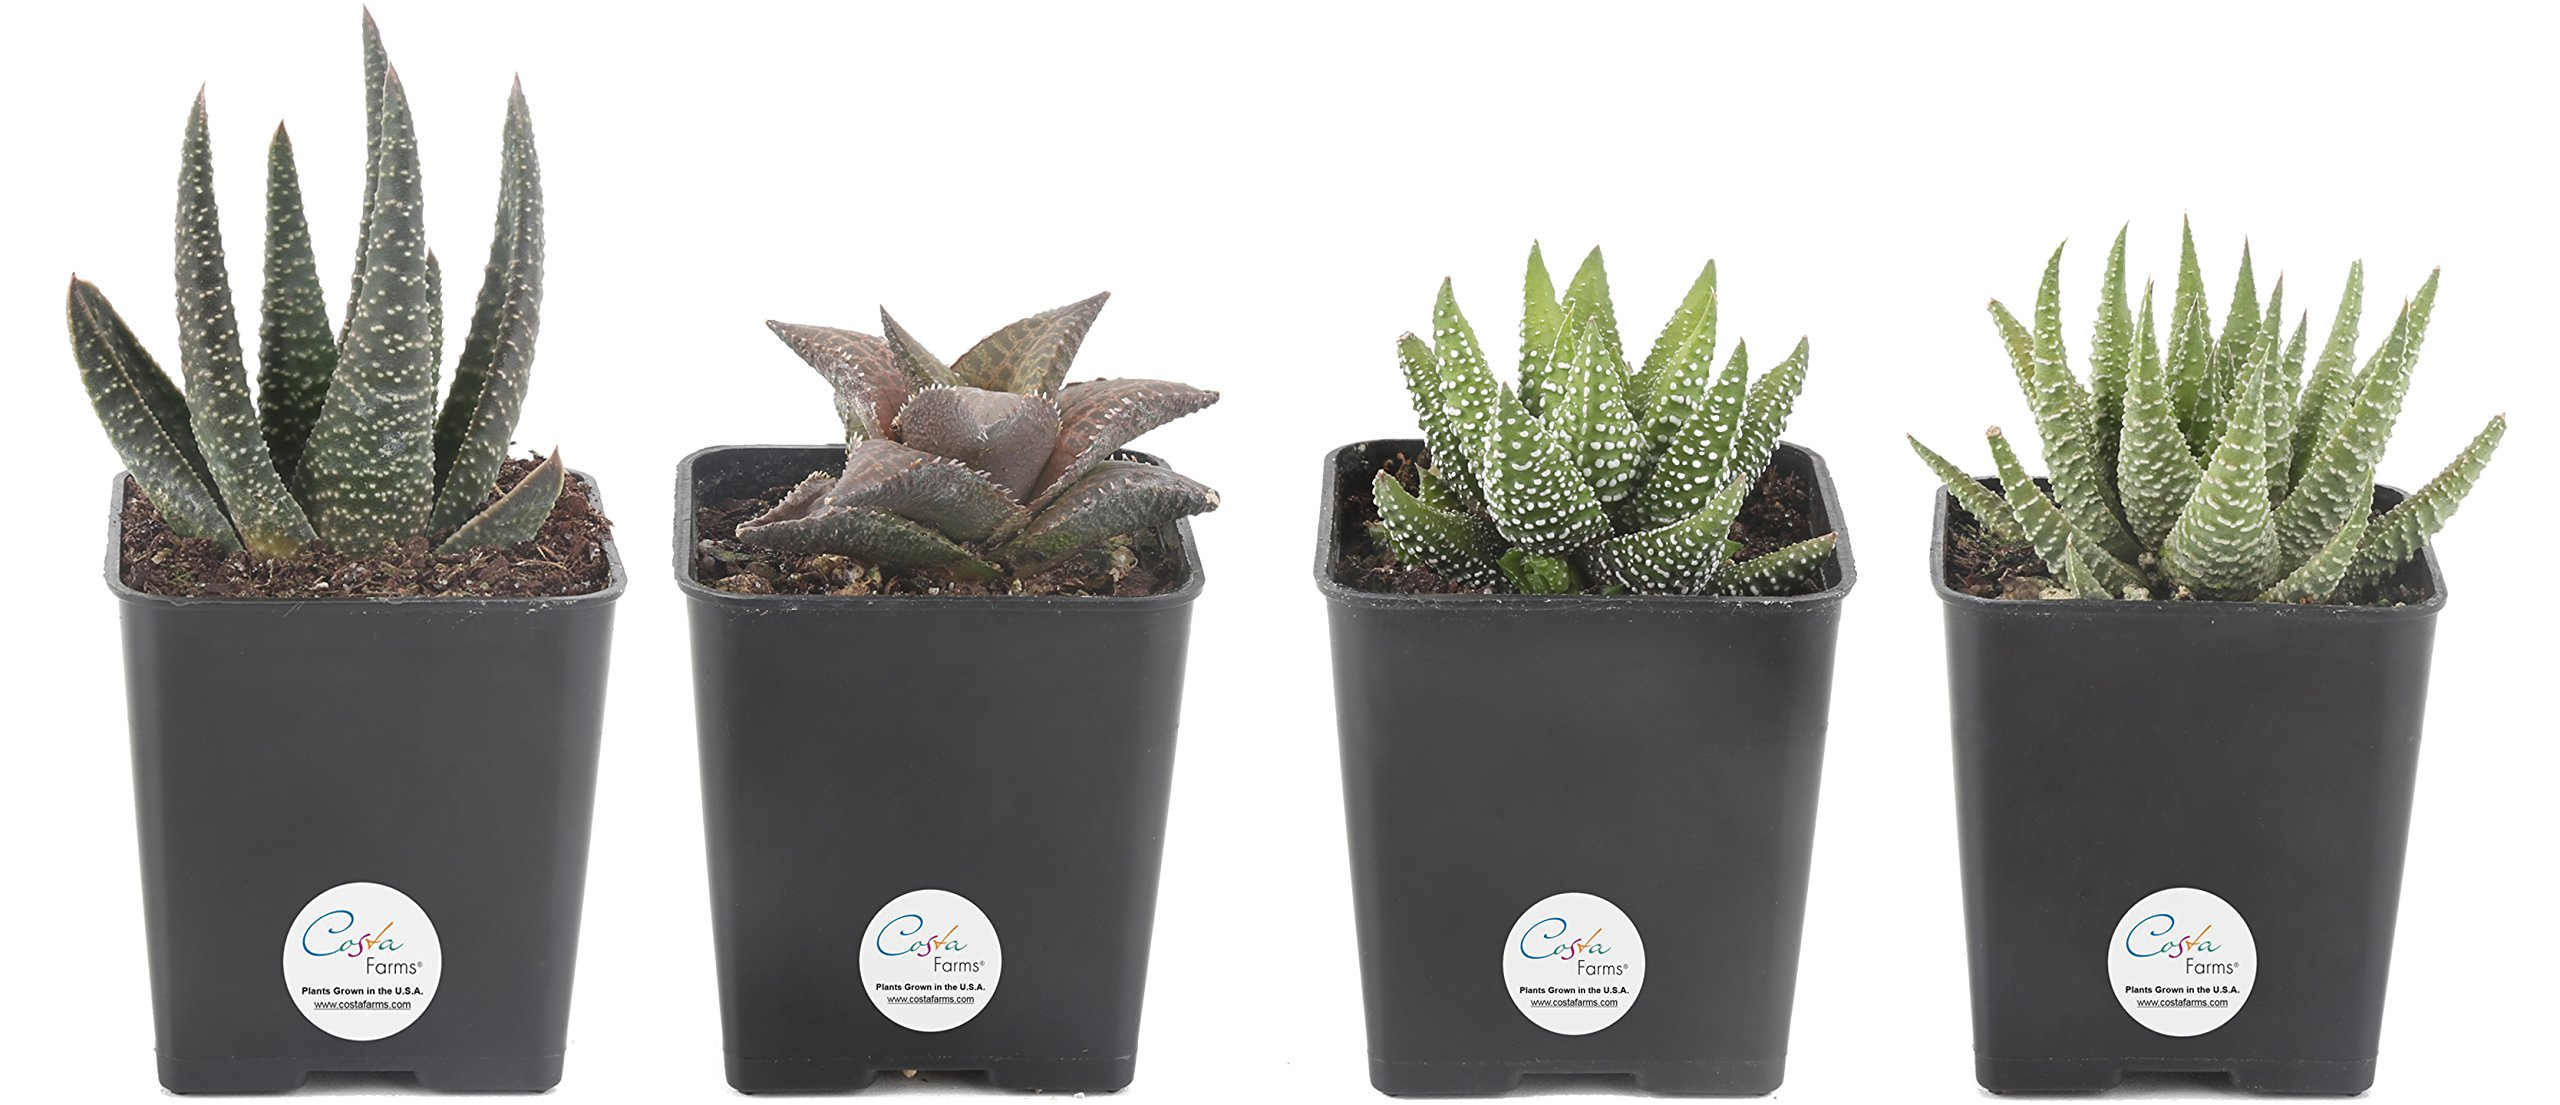 Costa Farms Premium Live Haworthia Succulent Plant, 4 Pack Grower Choice Assortment in 2.5'' Grower Pot